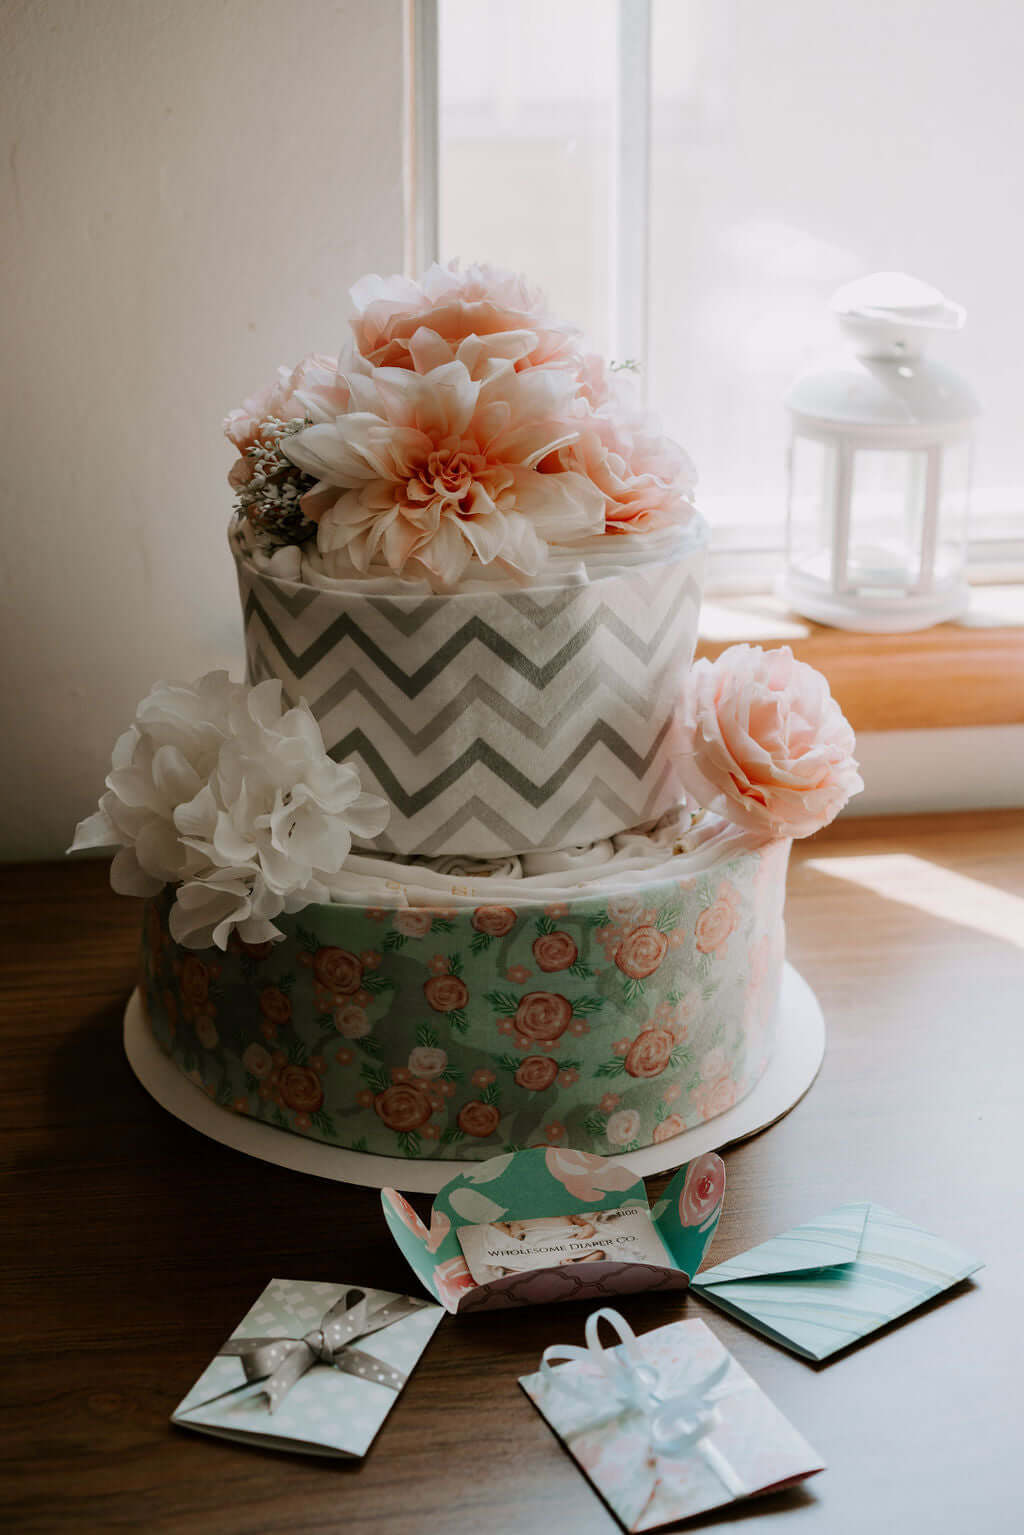 Cloth Diaper Cake - Wholesome Diaper Co.